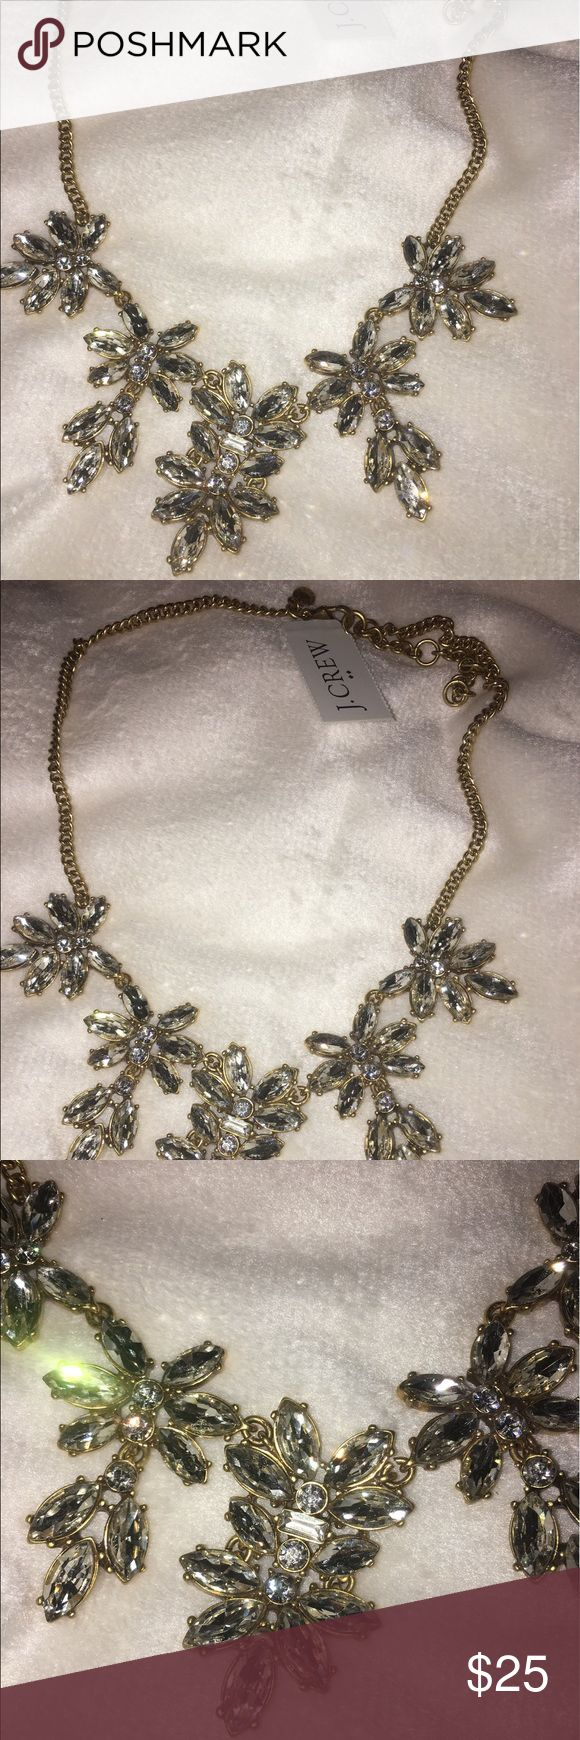 👸🏼J CREW NECKLACE 👸🏼 Gorgeous J Crew necklace with tags! I don't remember if I bought this at J Crew or J Crew Factory...but it is still super fabulous 😍 J. Crew Jewelry Necklaces